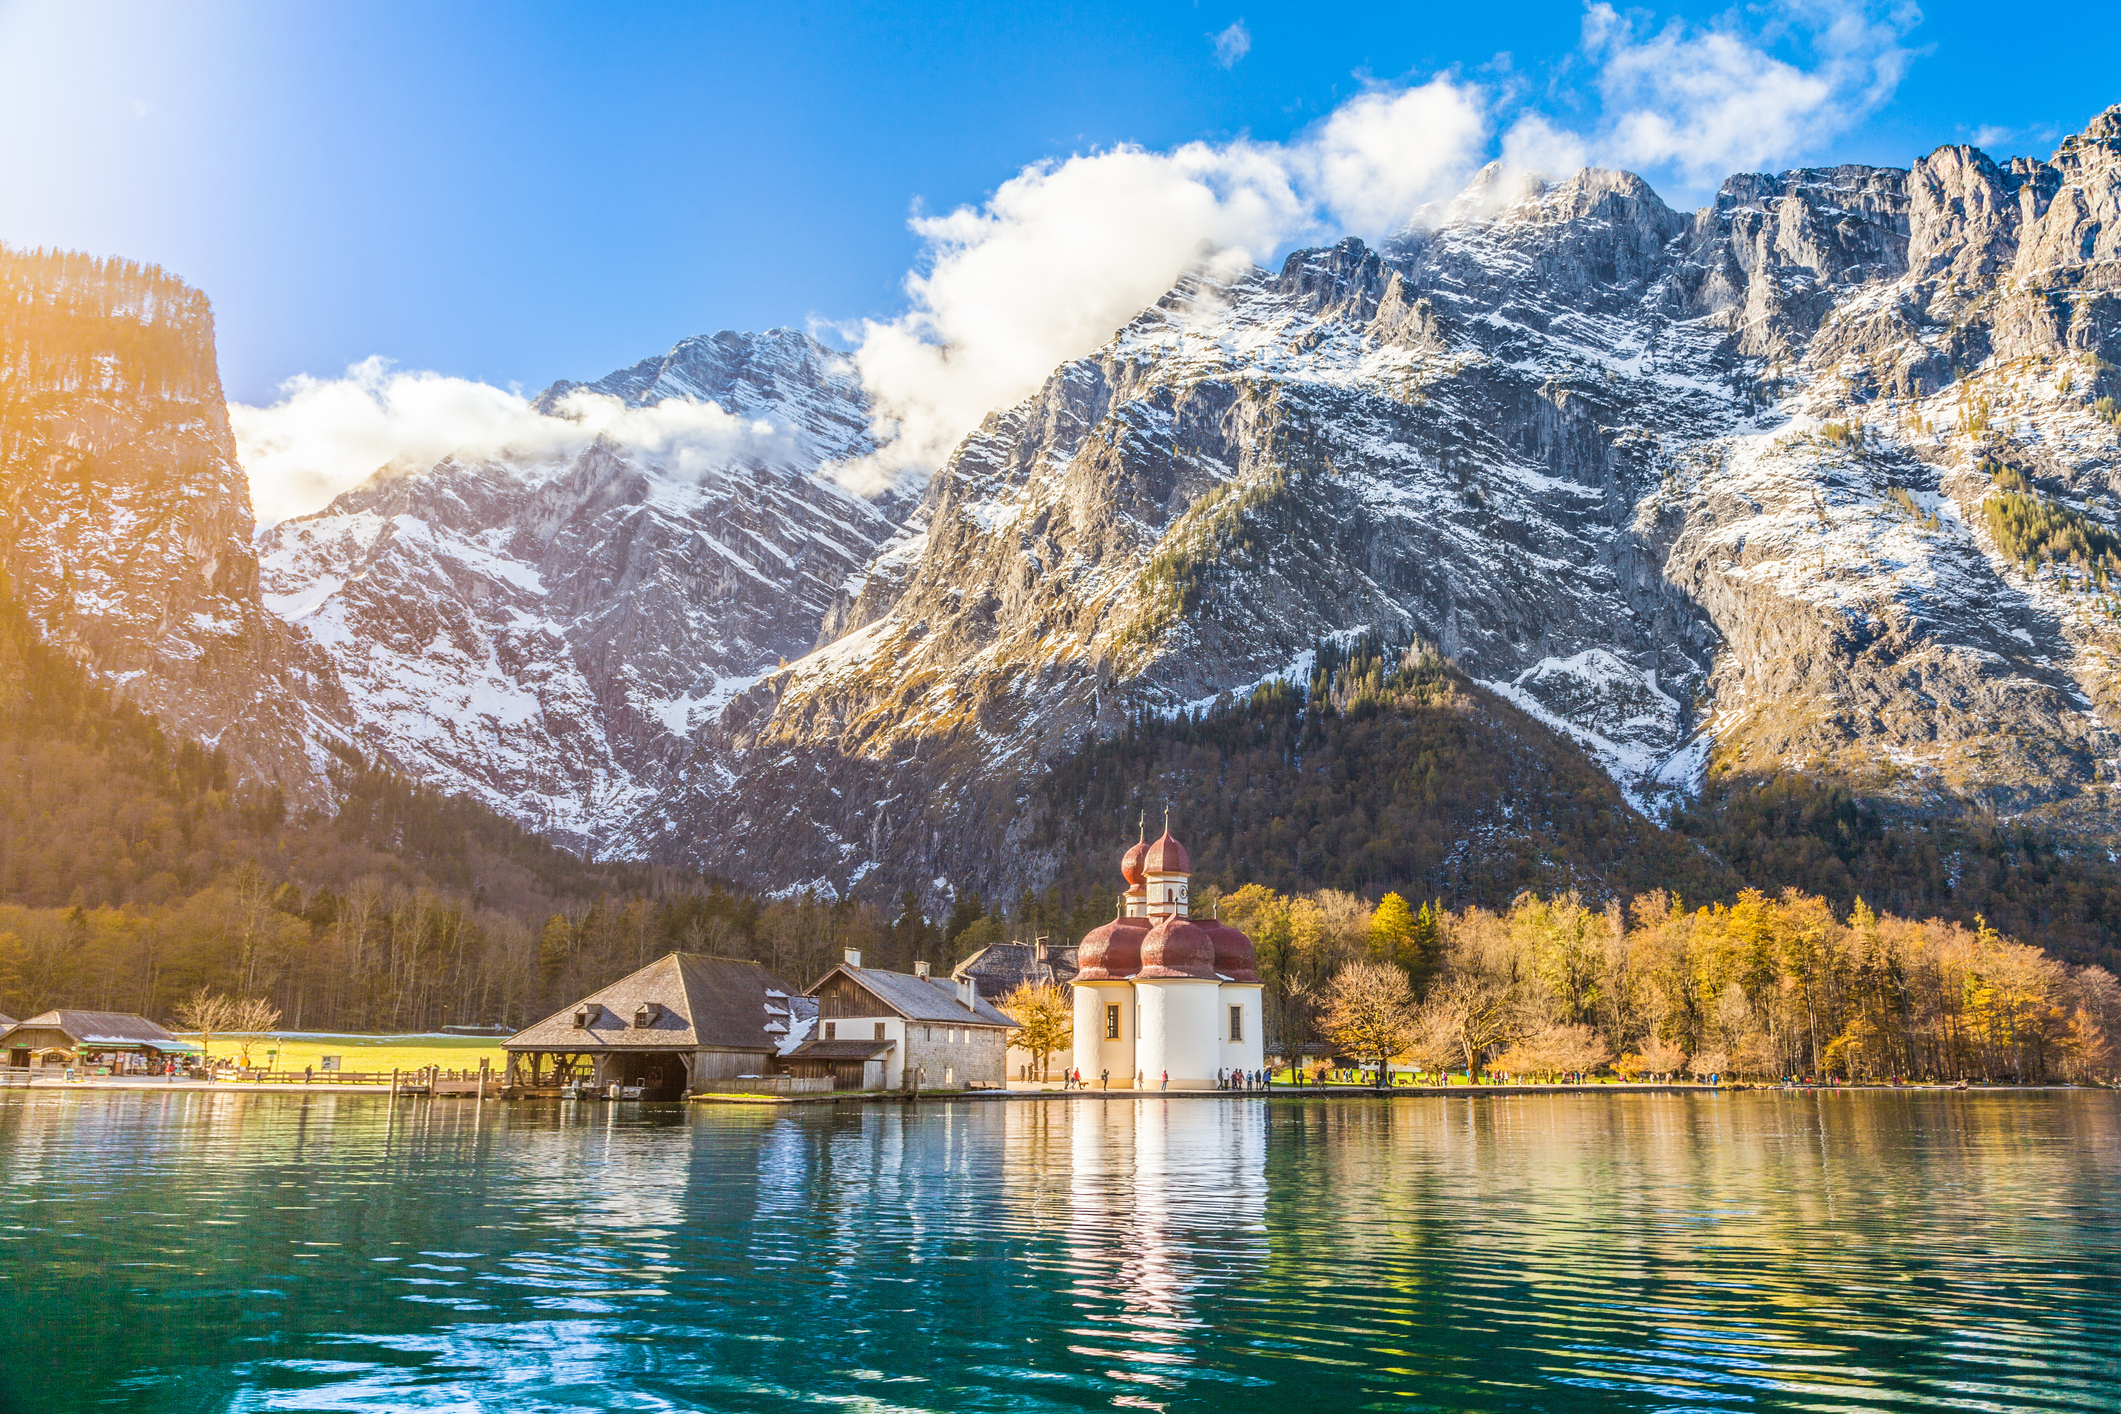 Lake Konigssee (Getty Images/iStock)